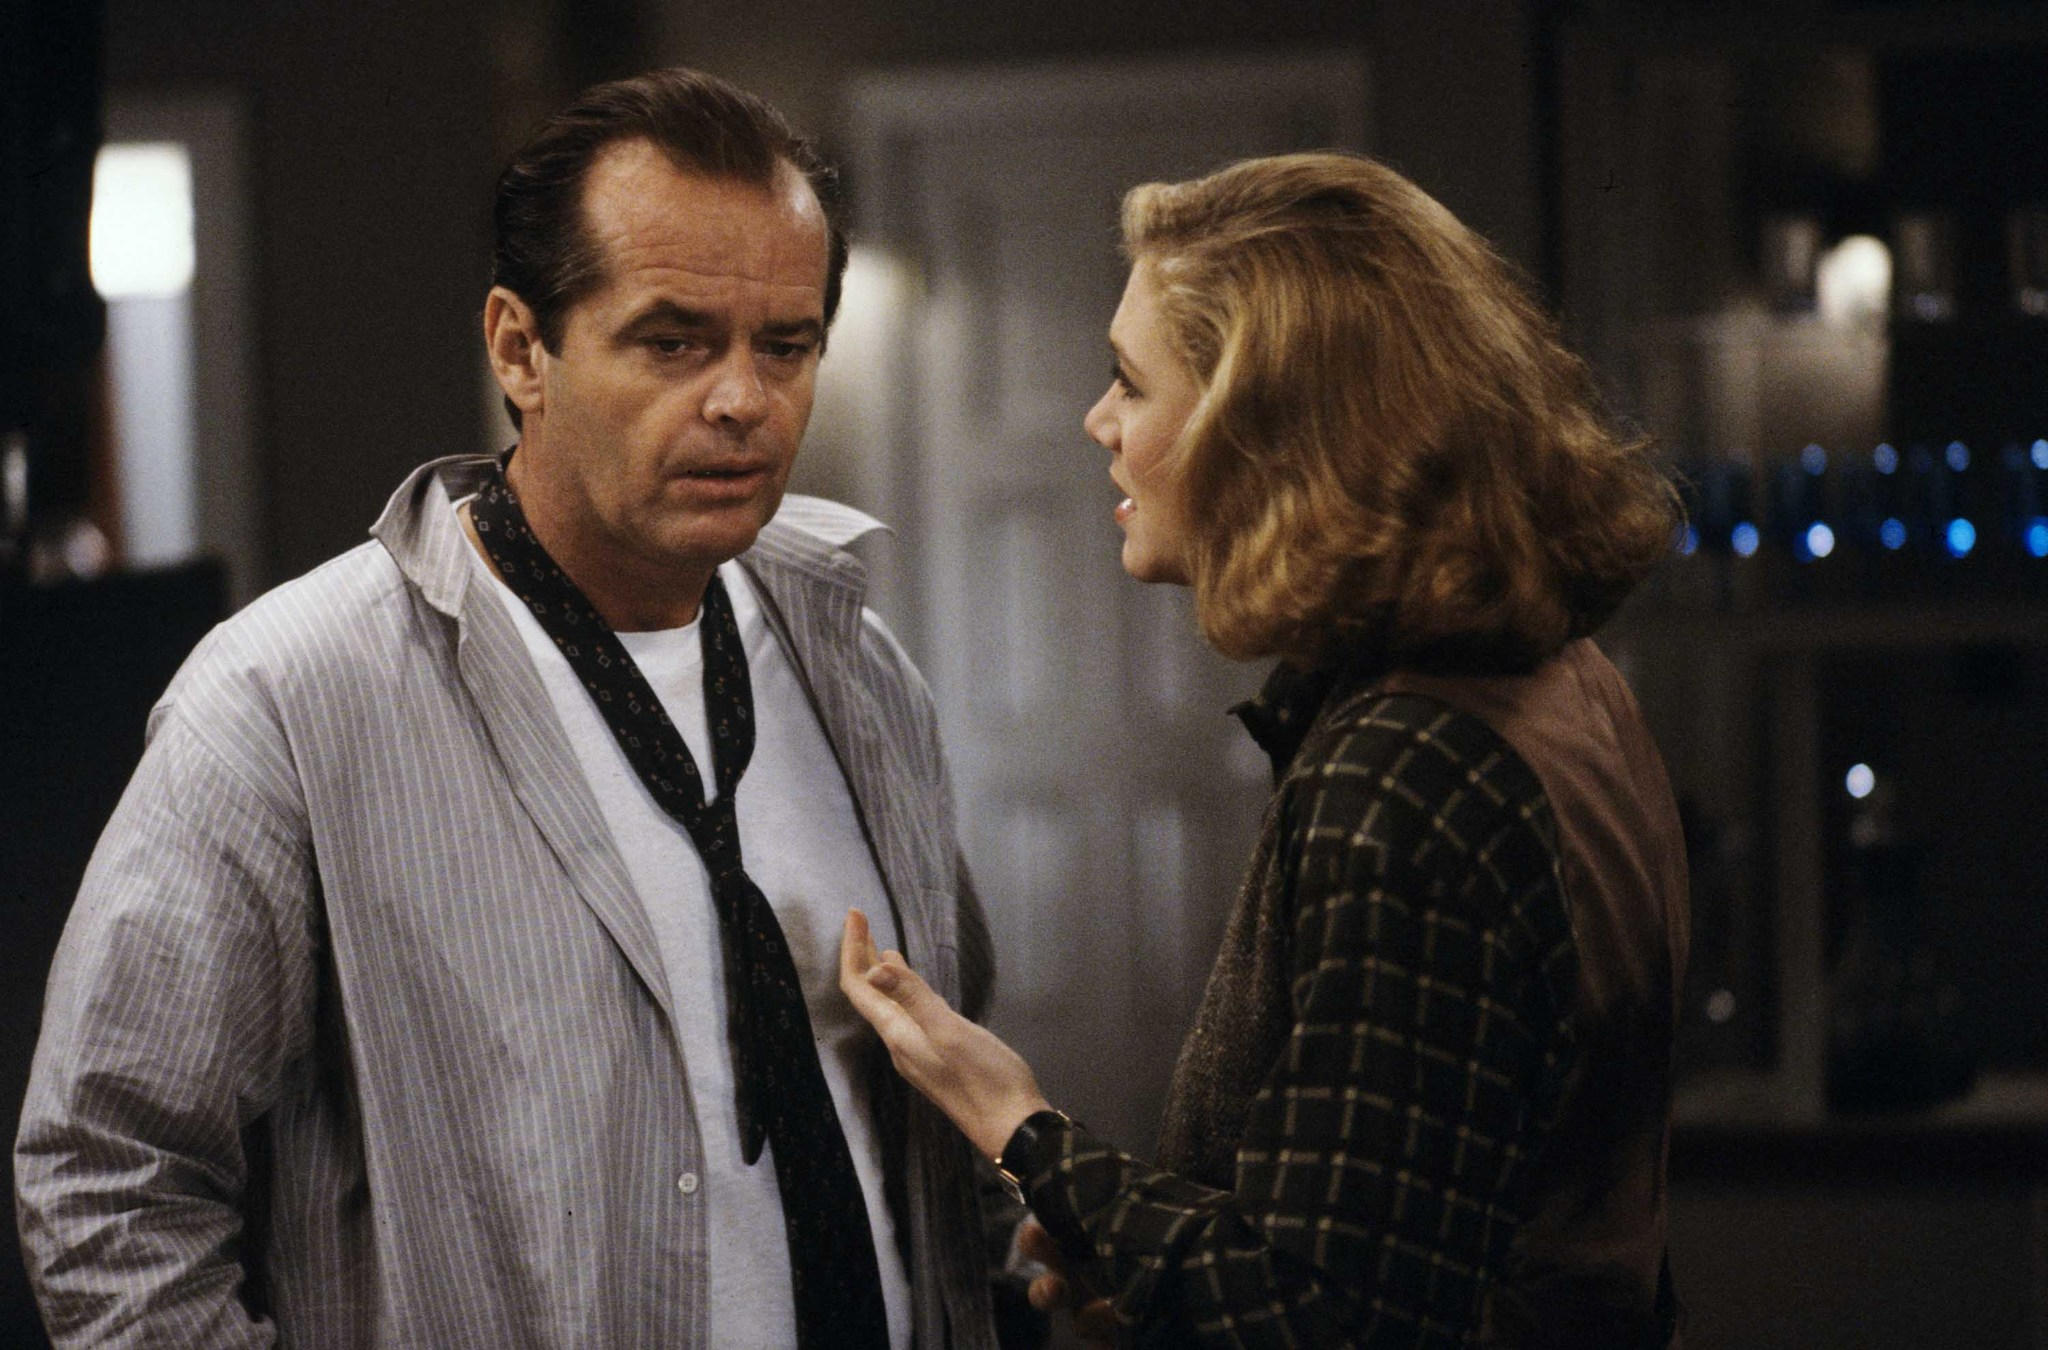 Jack Nicholson and Kathleen Turner in Prizzi's Honor (1985)